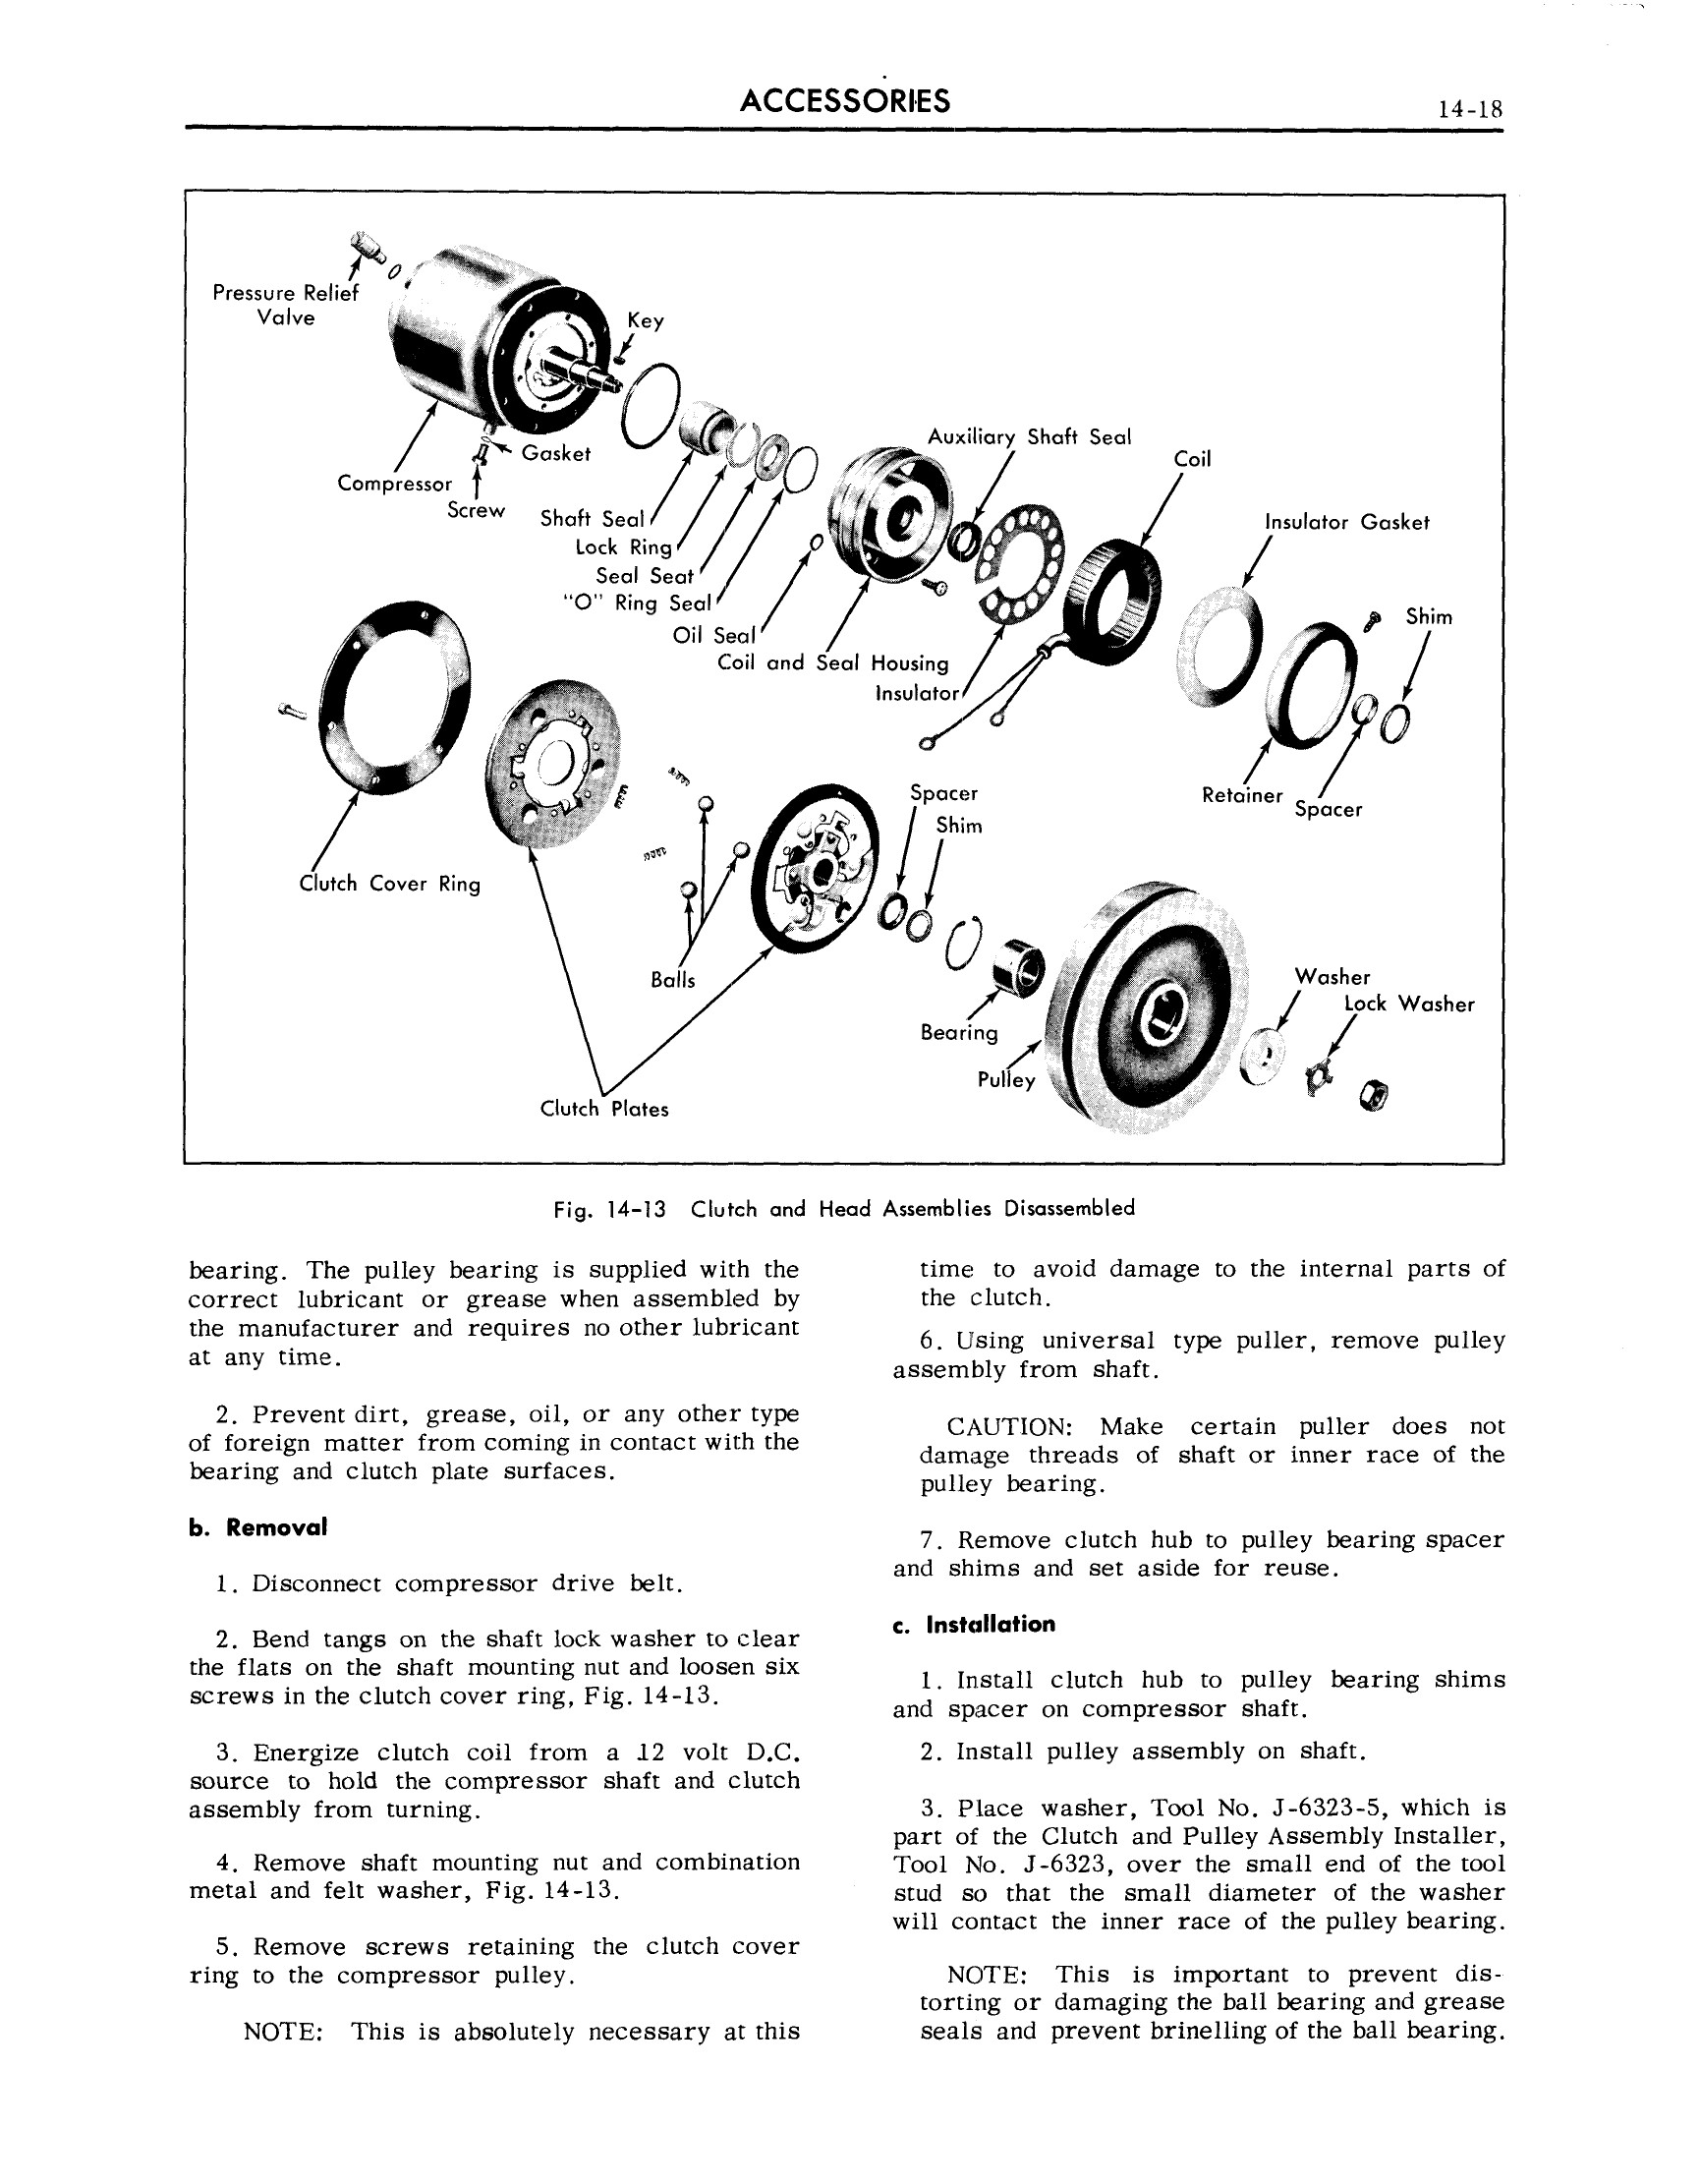 1959 Cadillac Shop Manual- Accessories Page 18 of 58